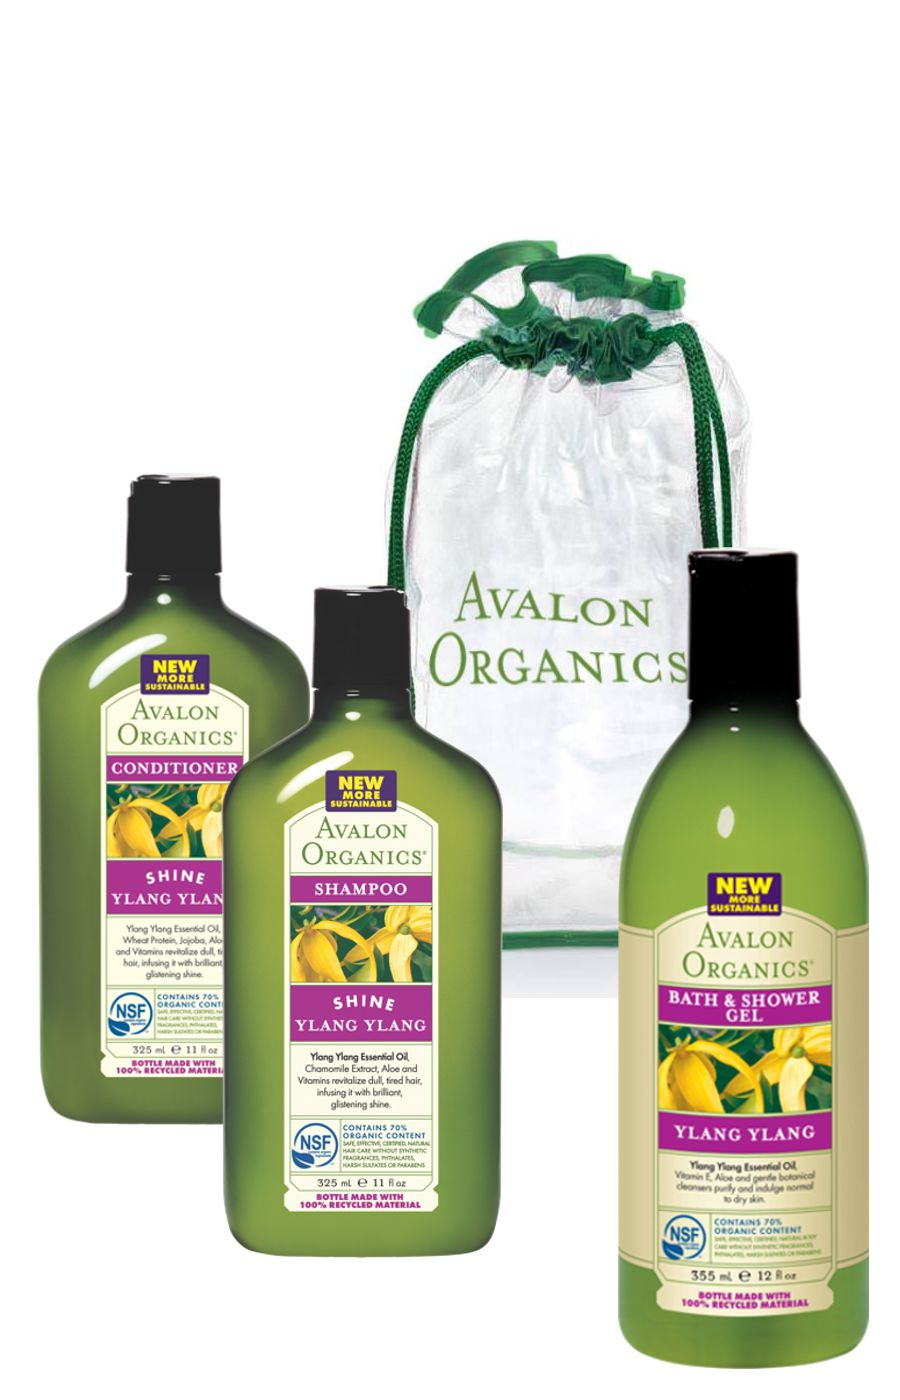 Avalon Organics YLANG YLANG Shine Shampoo & Conditioner & YLANG YLANG Bath & Shower Gel Шампунь и кондиционер с маслом иланг-иланг + Гель для ванны и душа с иланг-иланг (325 ml + 325 ml + 355 ml) AV60217